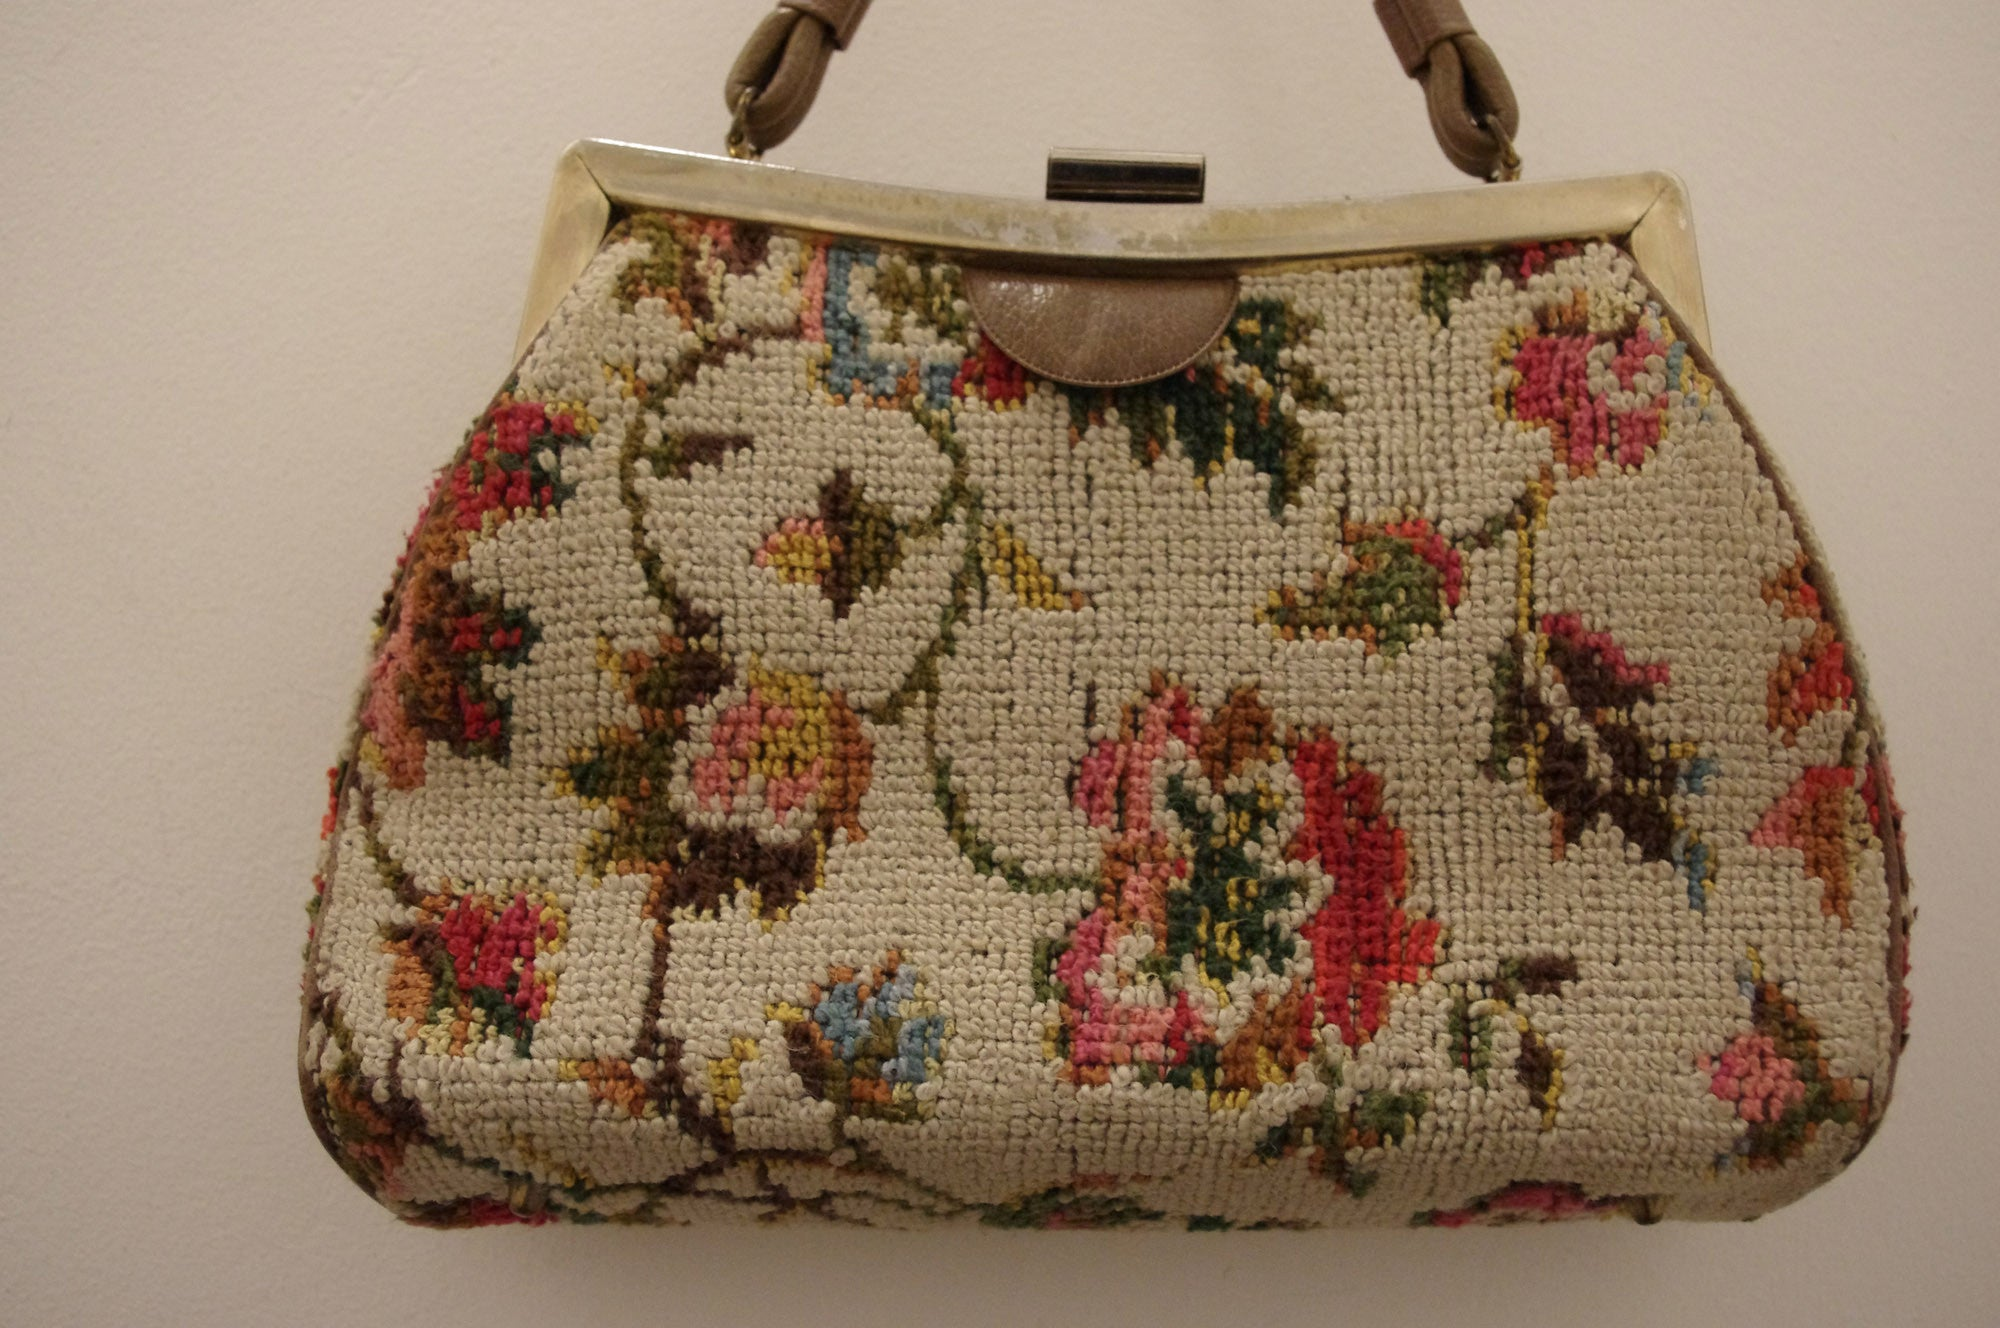 In Love with Tapestry Vintage Bag